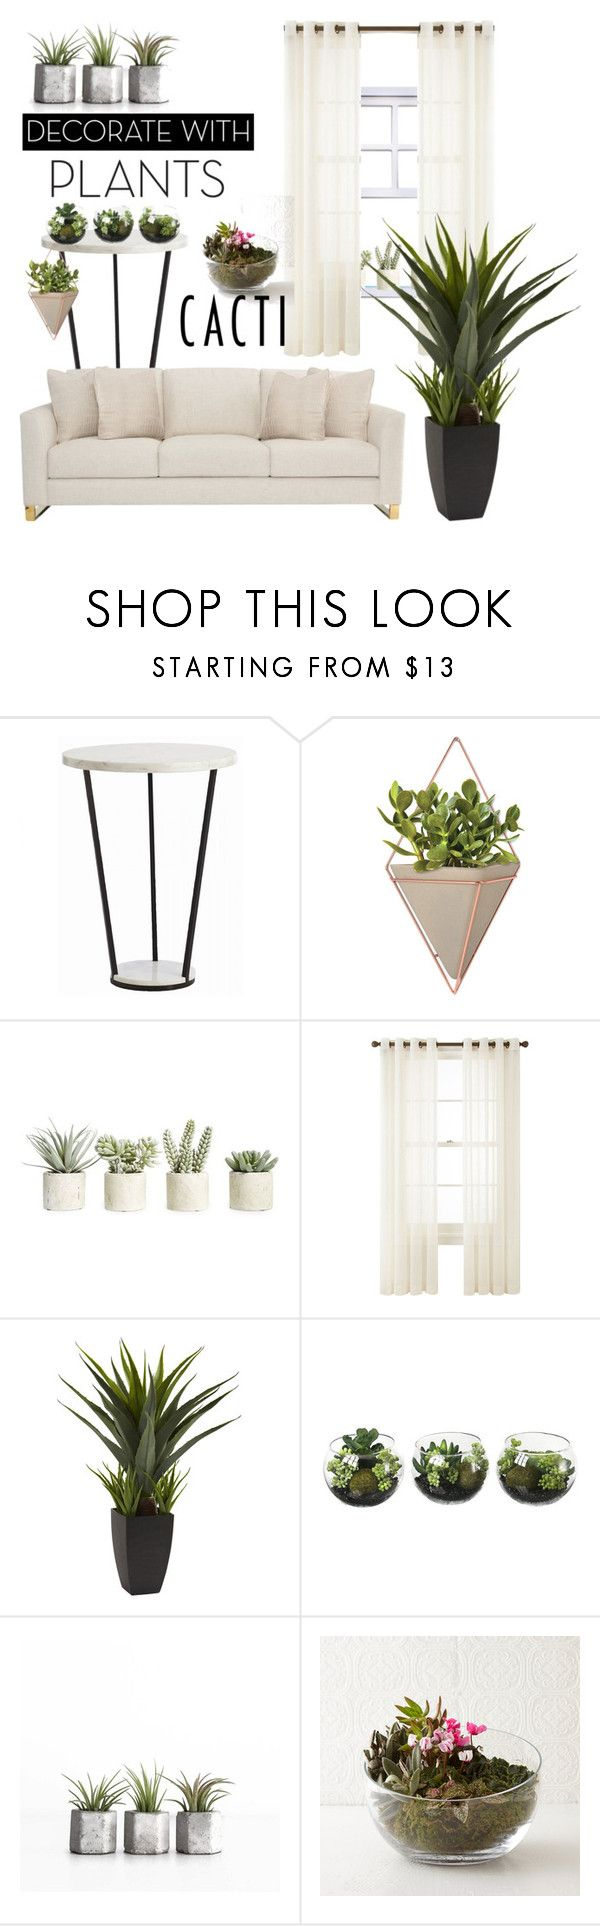 """""""Plants!"""" by thais-santana-1 ❤ liked on Polyvore featuring interior, interiors, interior design, home, home decor, interior decorating, Bernhardt, Umbra, Allstate Floral and Royal Velvet"""